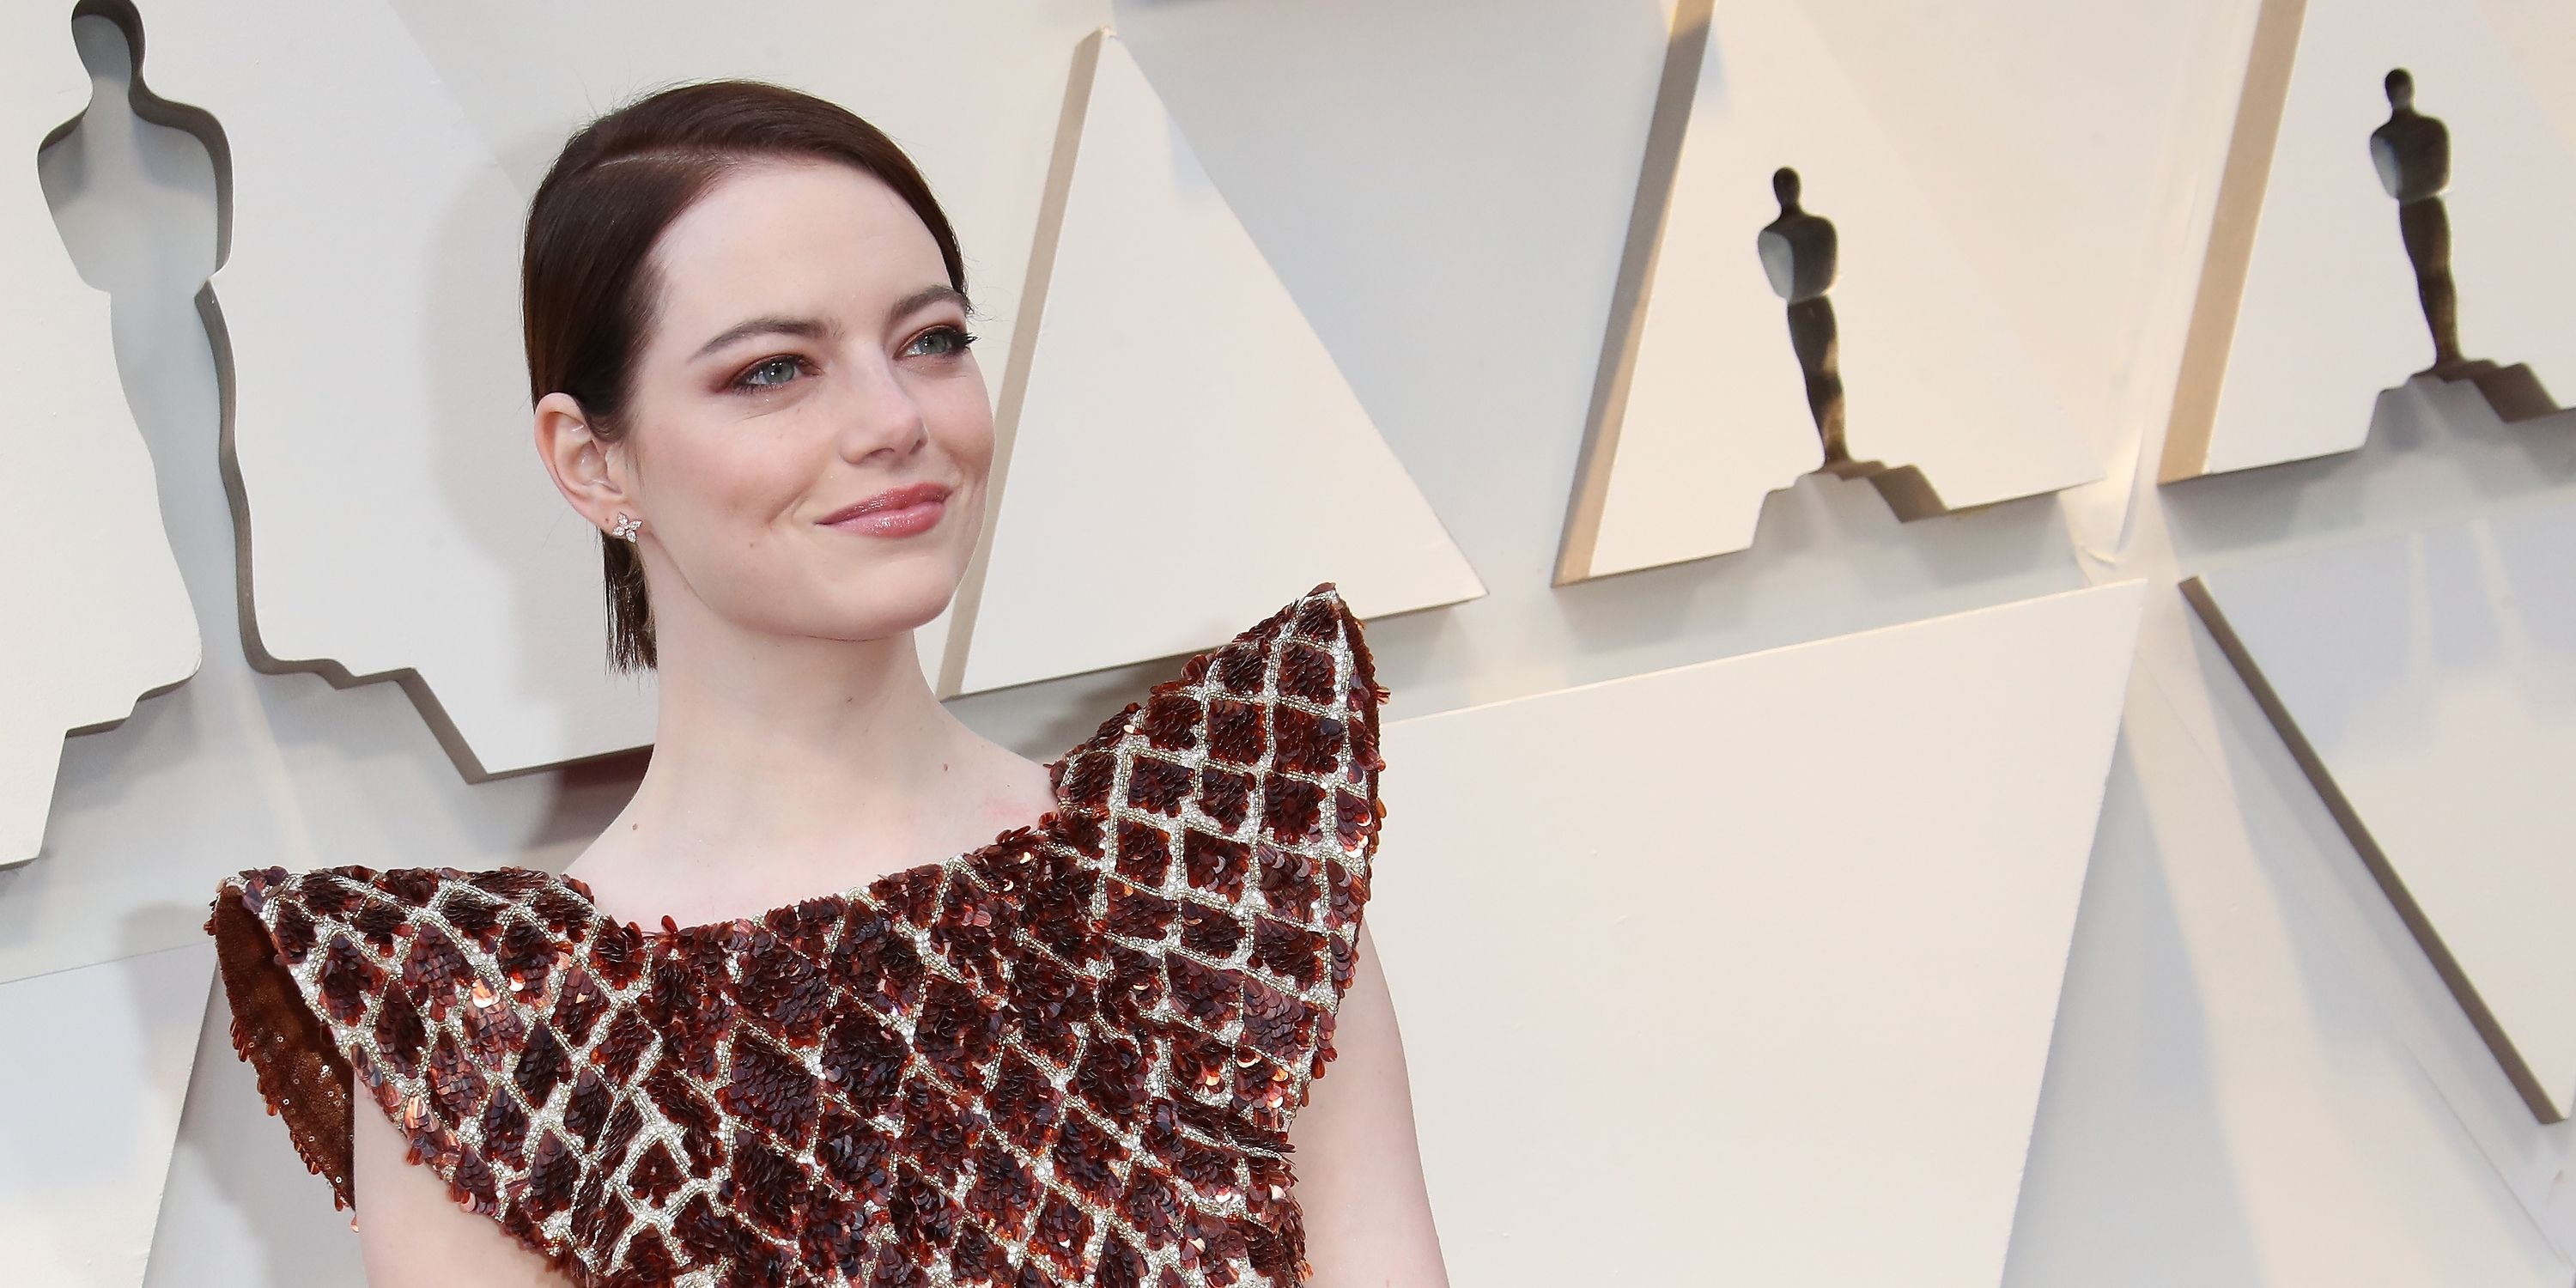 Louis Vuitton Emma Stone